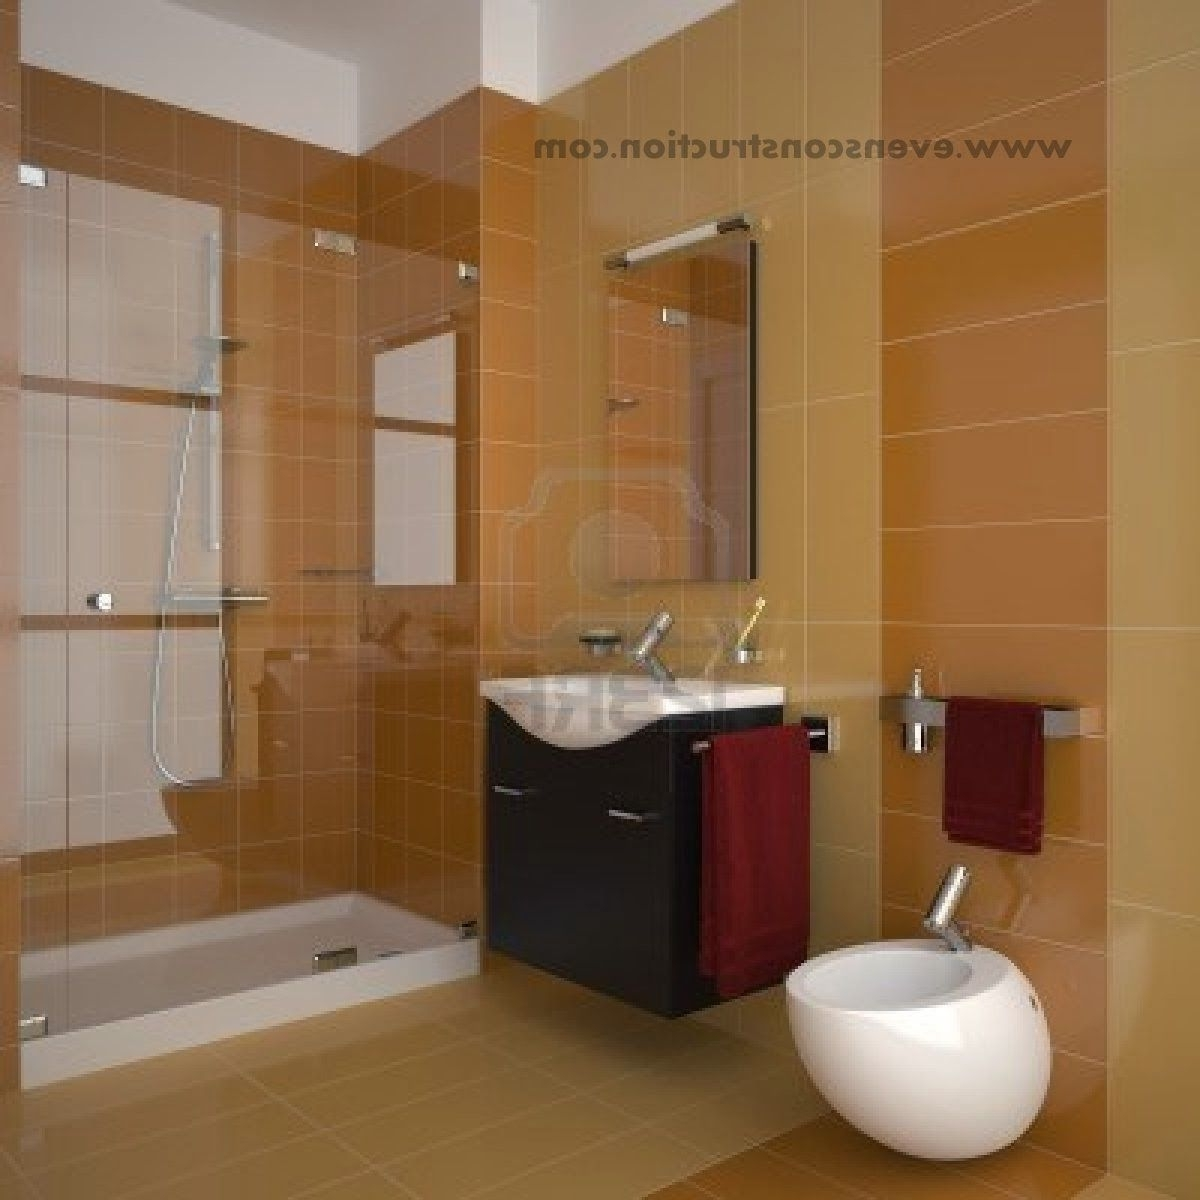 Kerala House Plans Kerala House Designs Kerala Interior Bathroom Tiles Designs Kerala